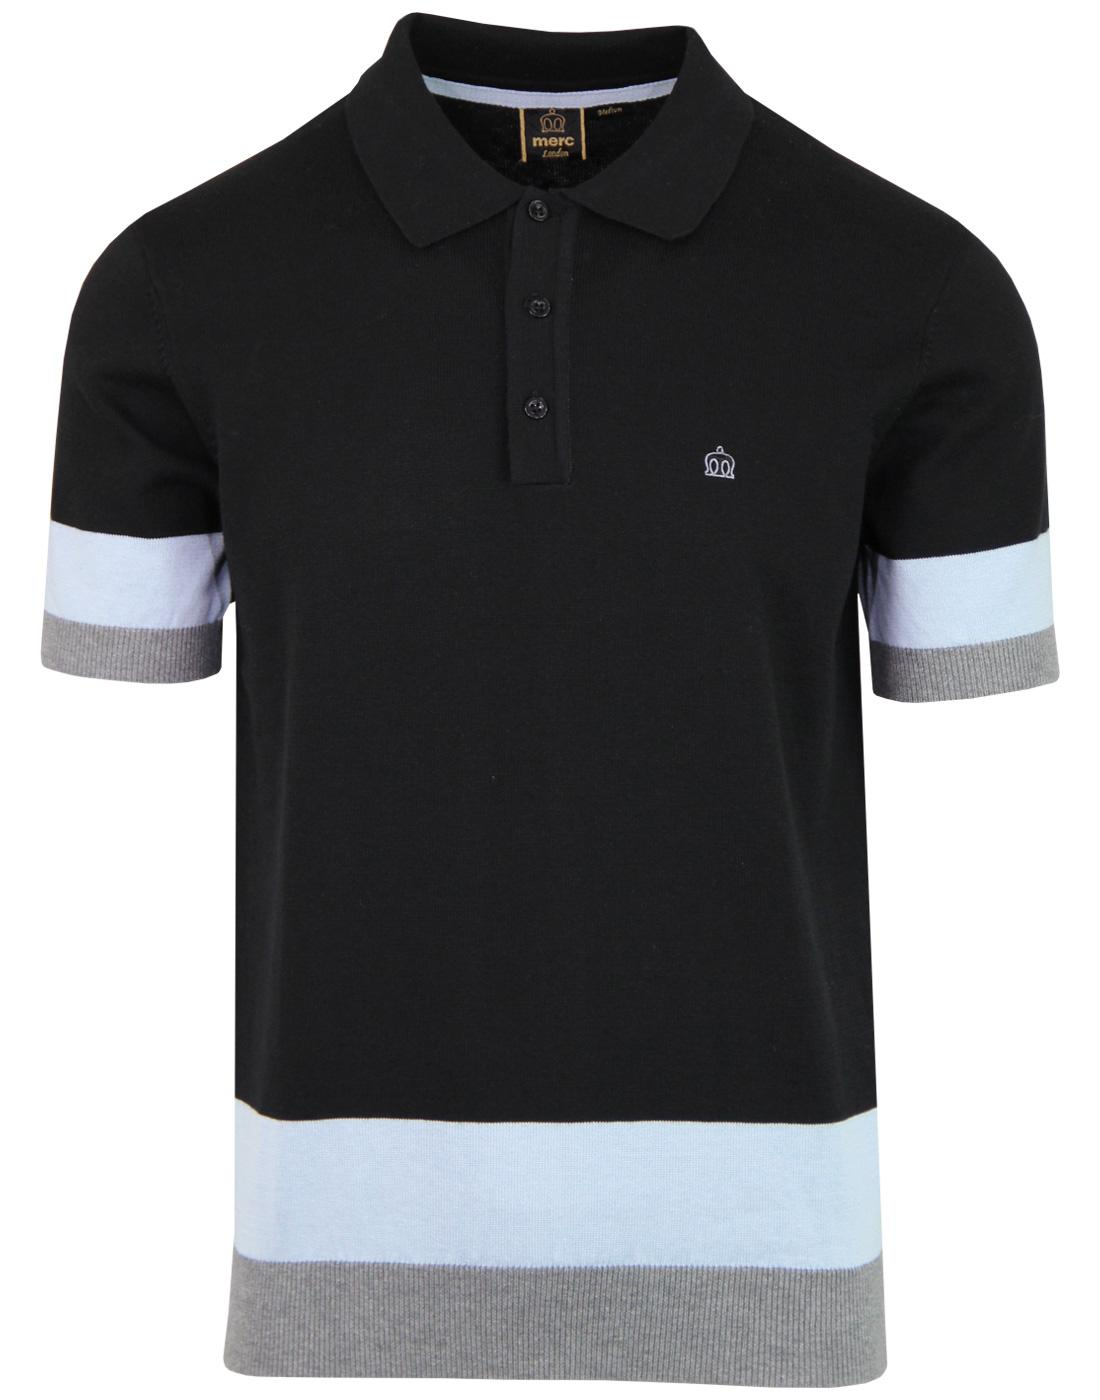 Captain MERC Mod Colour Block Knit Polo Shirt (B)